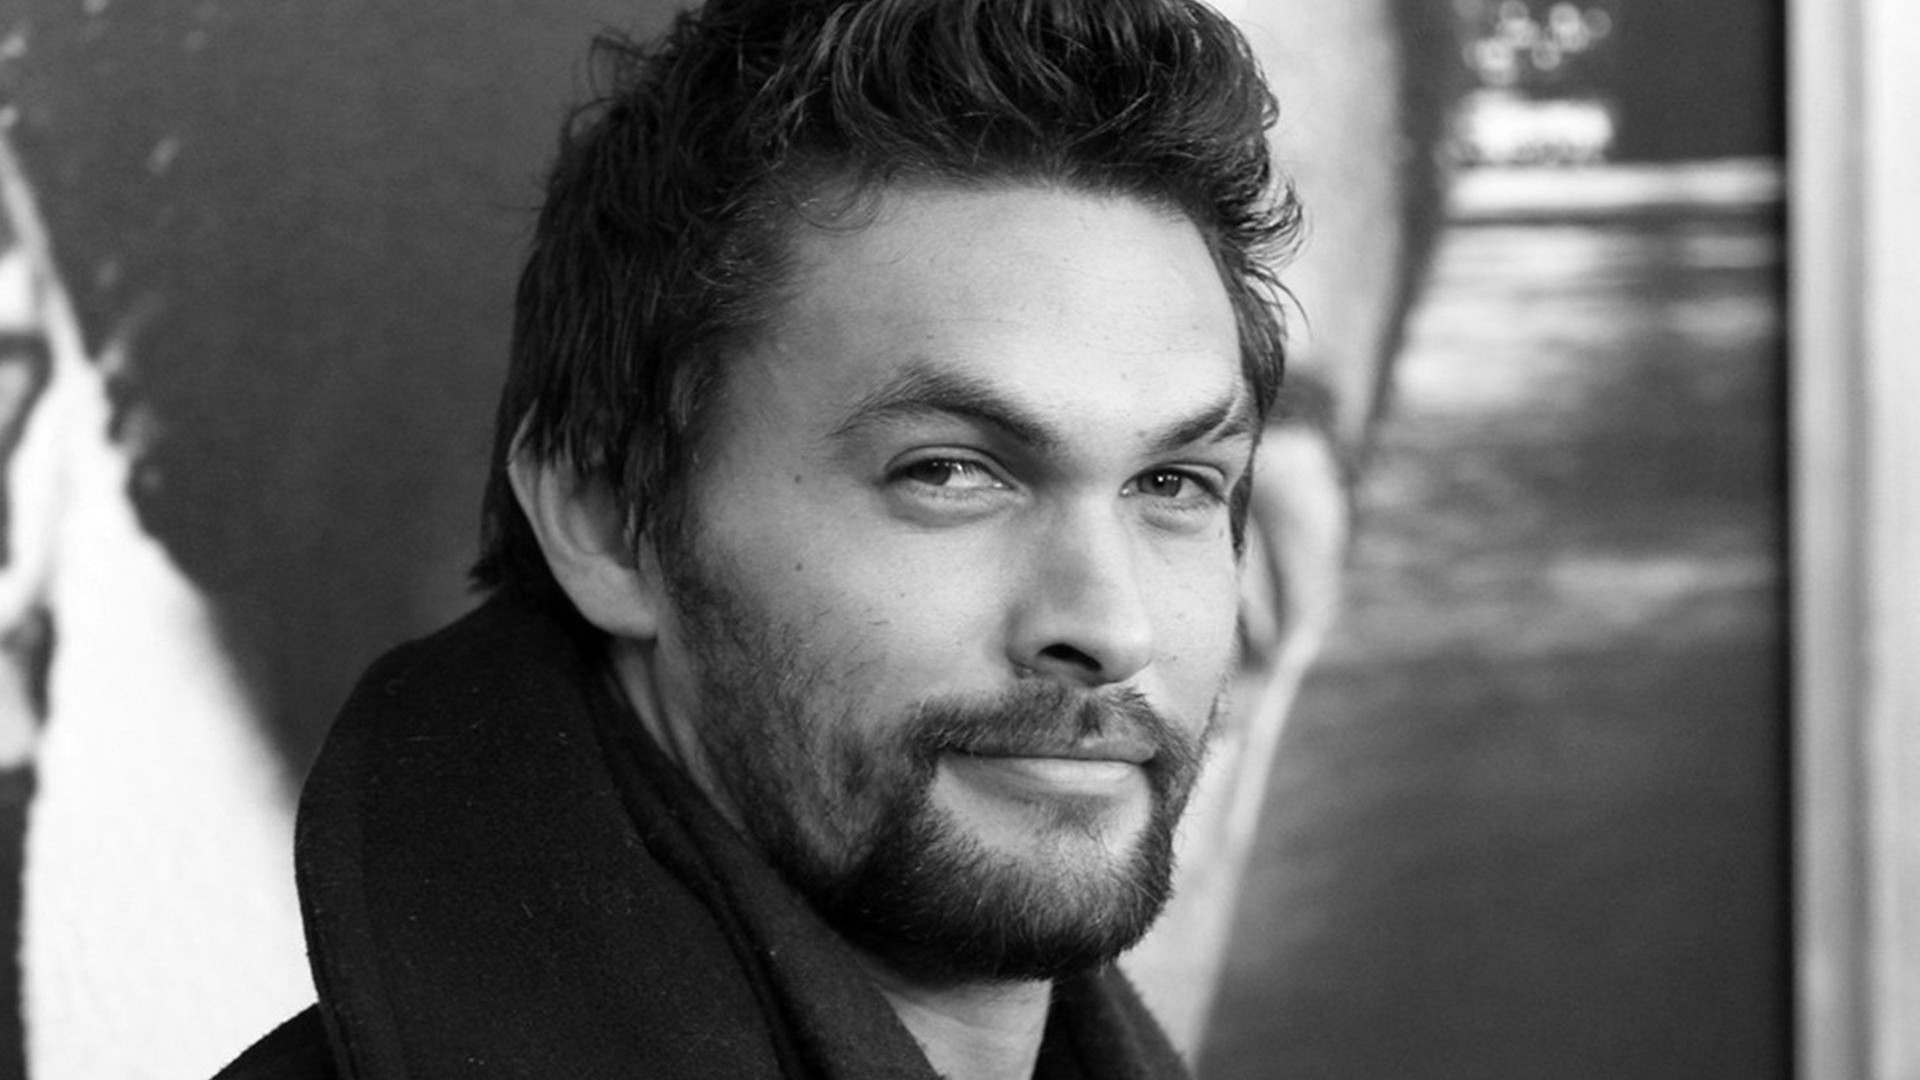 Jason Momoa HD Wallpapers for desktop download 1920x1080